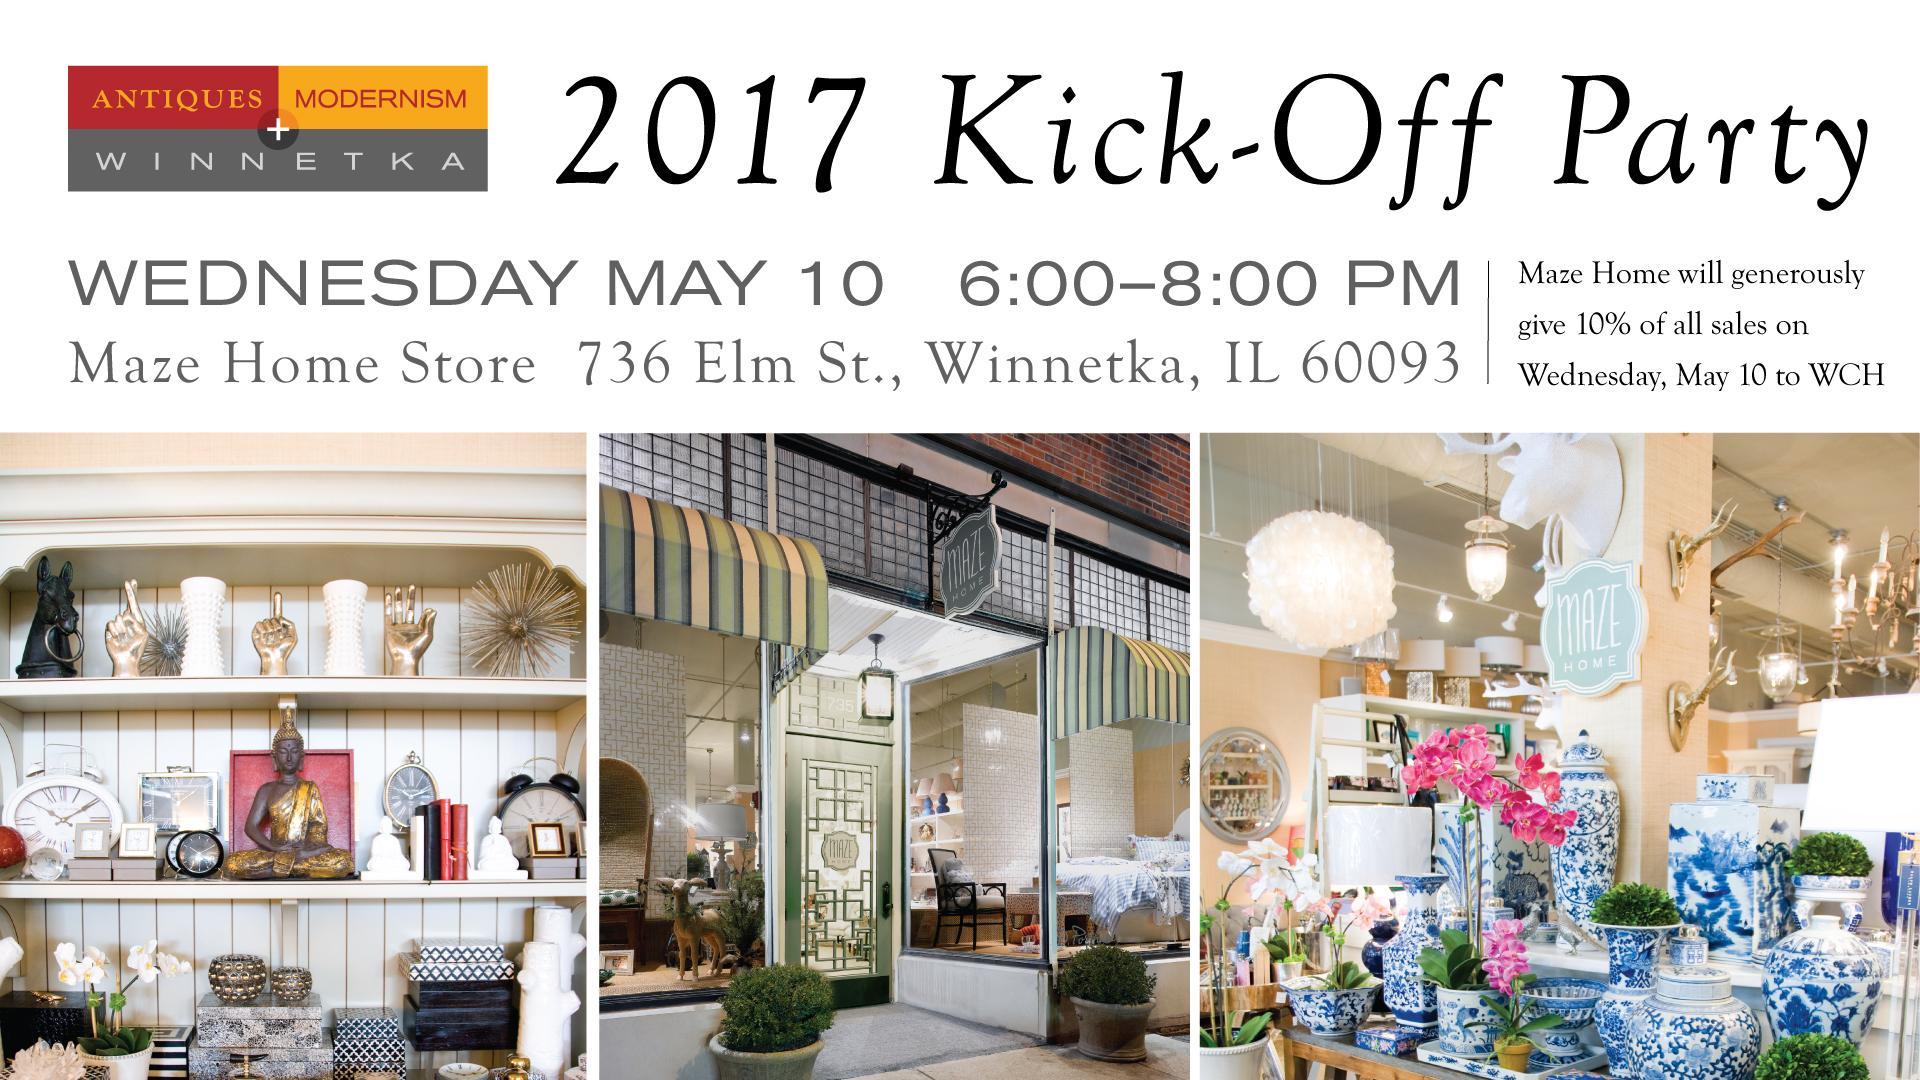 In May, the Woman's Board of the Winnetka Community House partnered with MAZE Home to kick-off the 2017 Antiques + Modernism Show [A+M]. Guests including Woman's Board committee members, local residents, and MAZE Home customers enjoyed a variety of light bites and libations, while celebrating the launch of A+M and viewing MAZE Home's beautiful collection of home décor and gifts.Click here to find out more about the kick-off! -